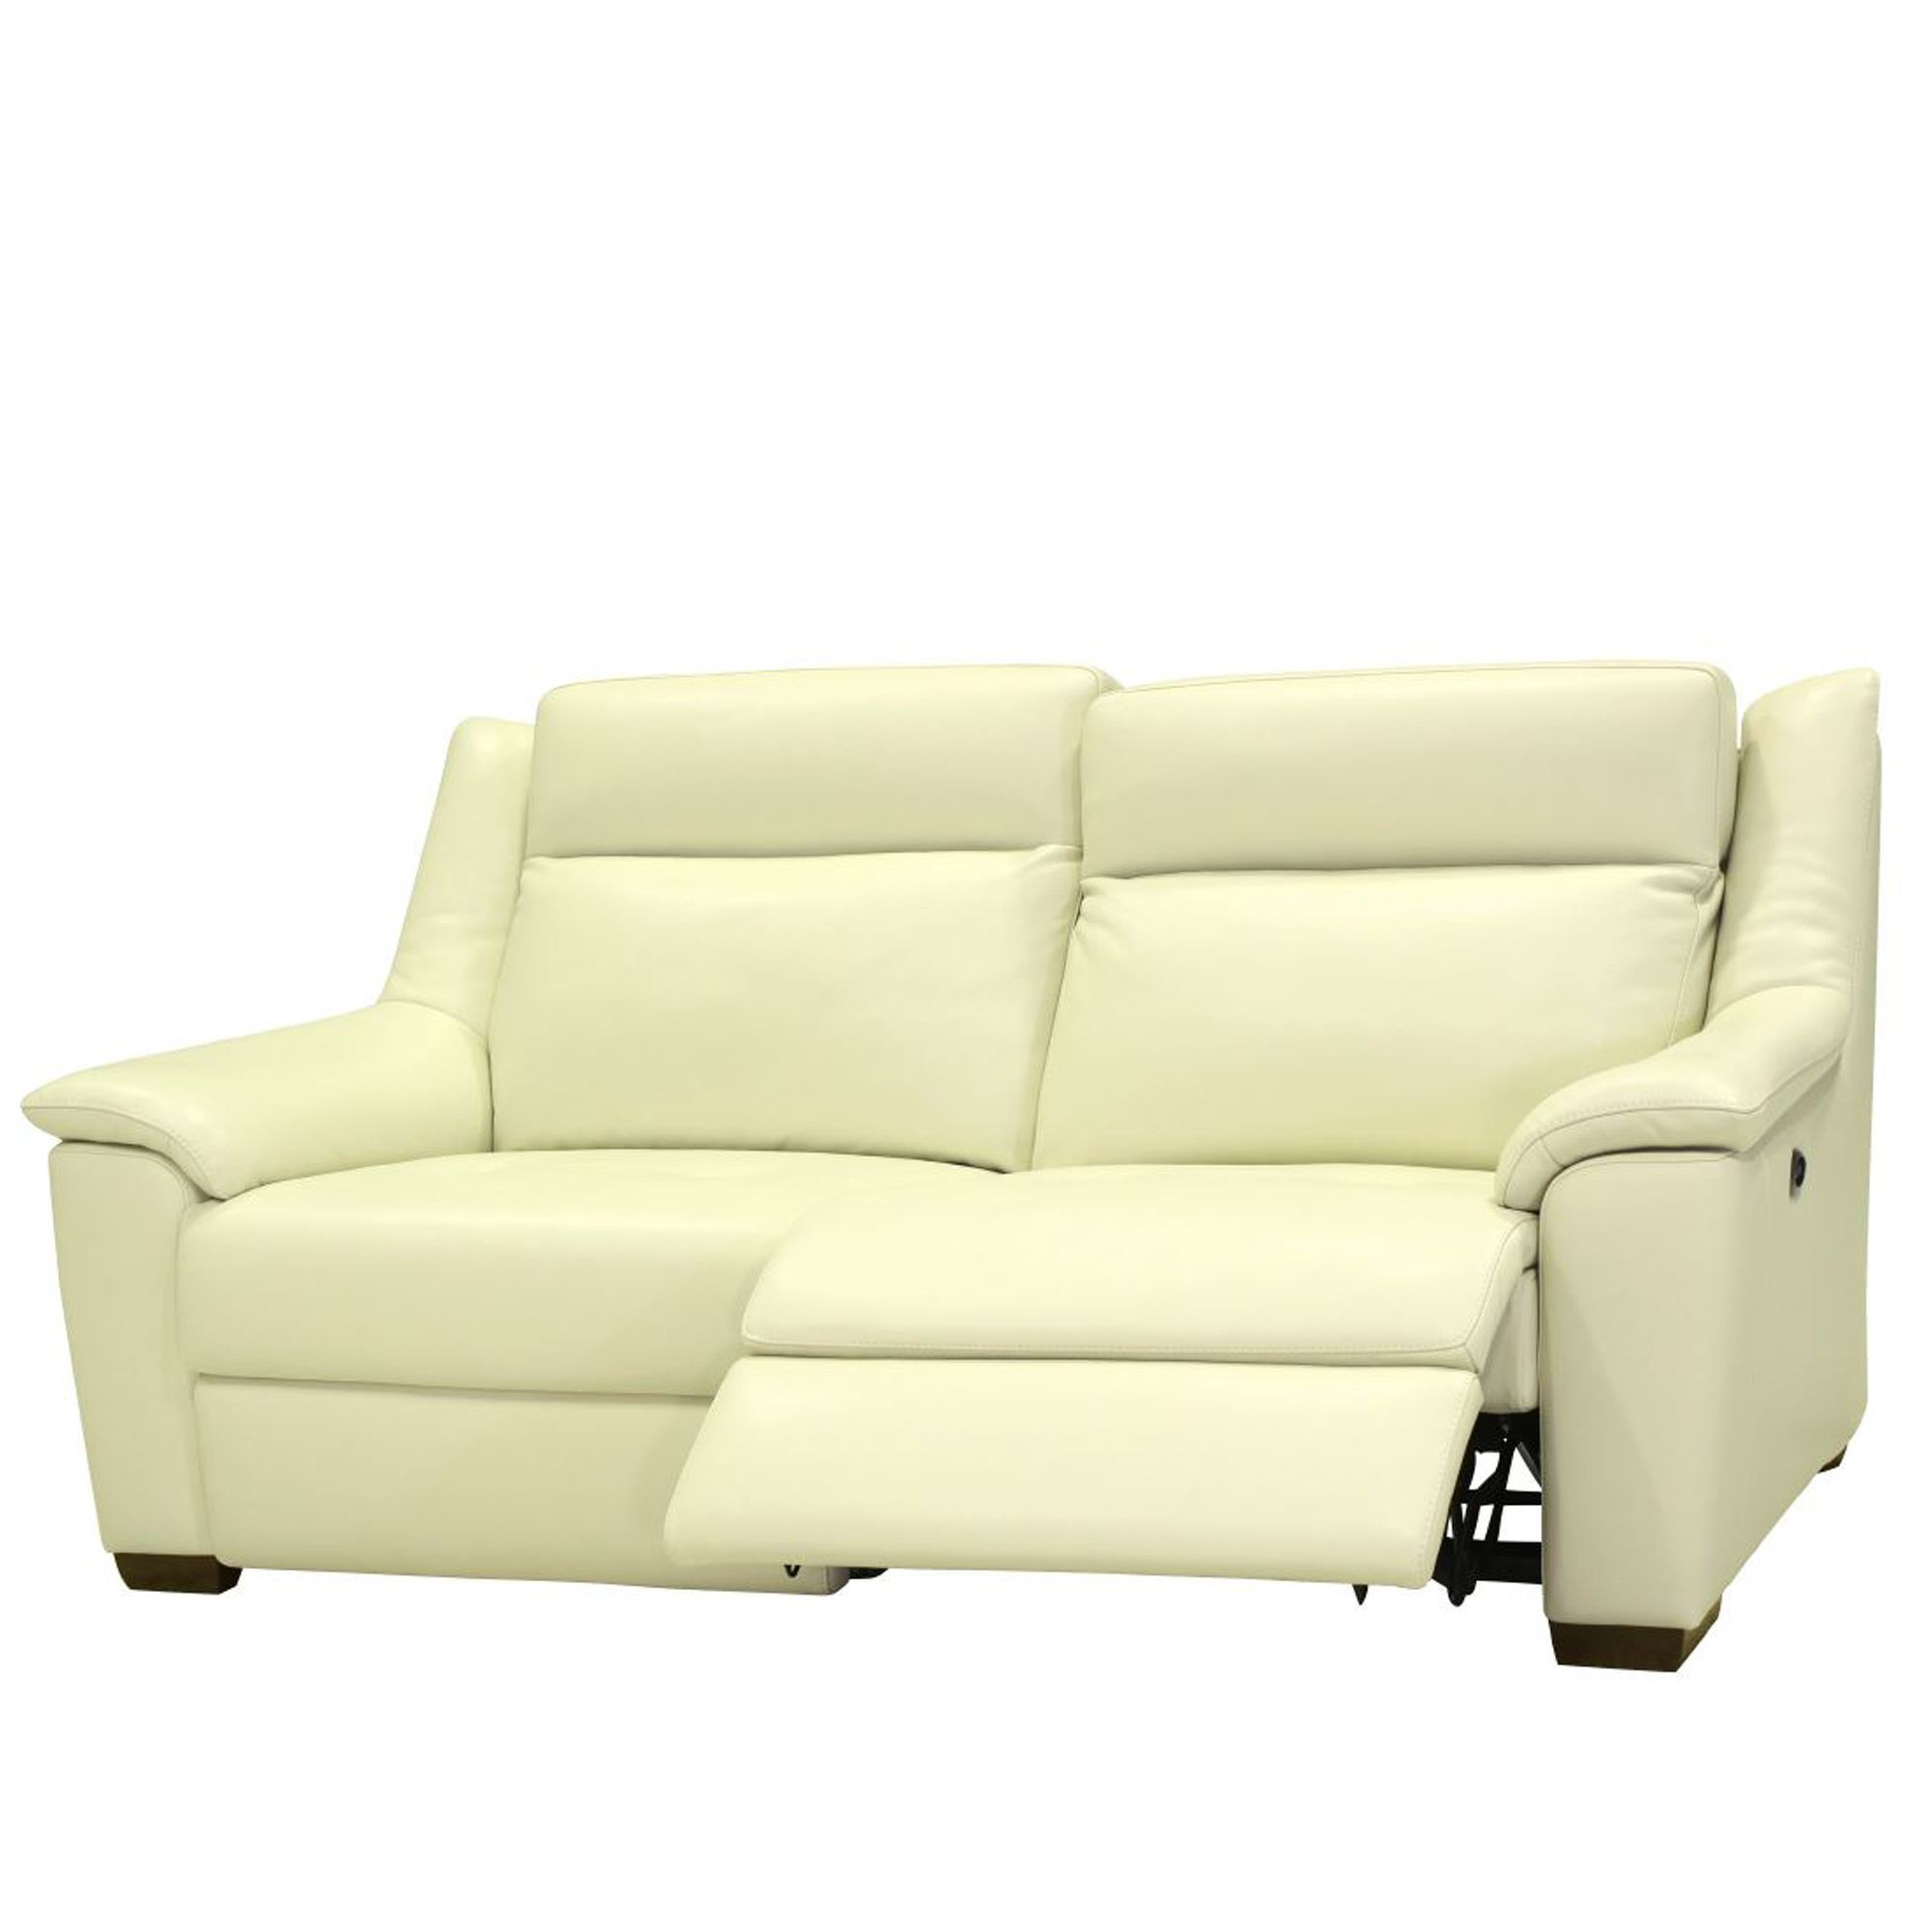 Cookes Collection Darwin 3 Seater Electric Recliner Sofa Darwin